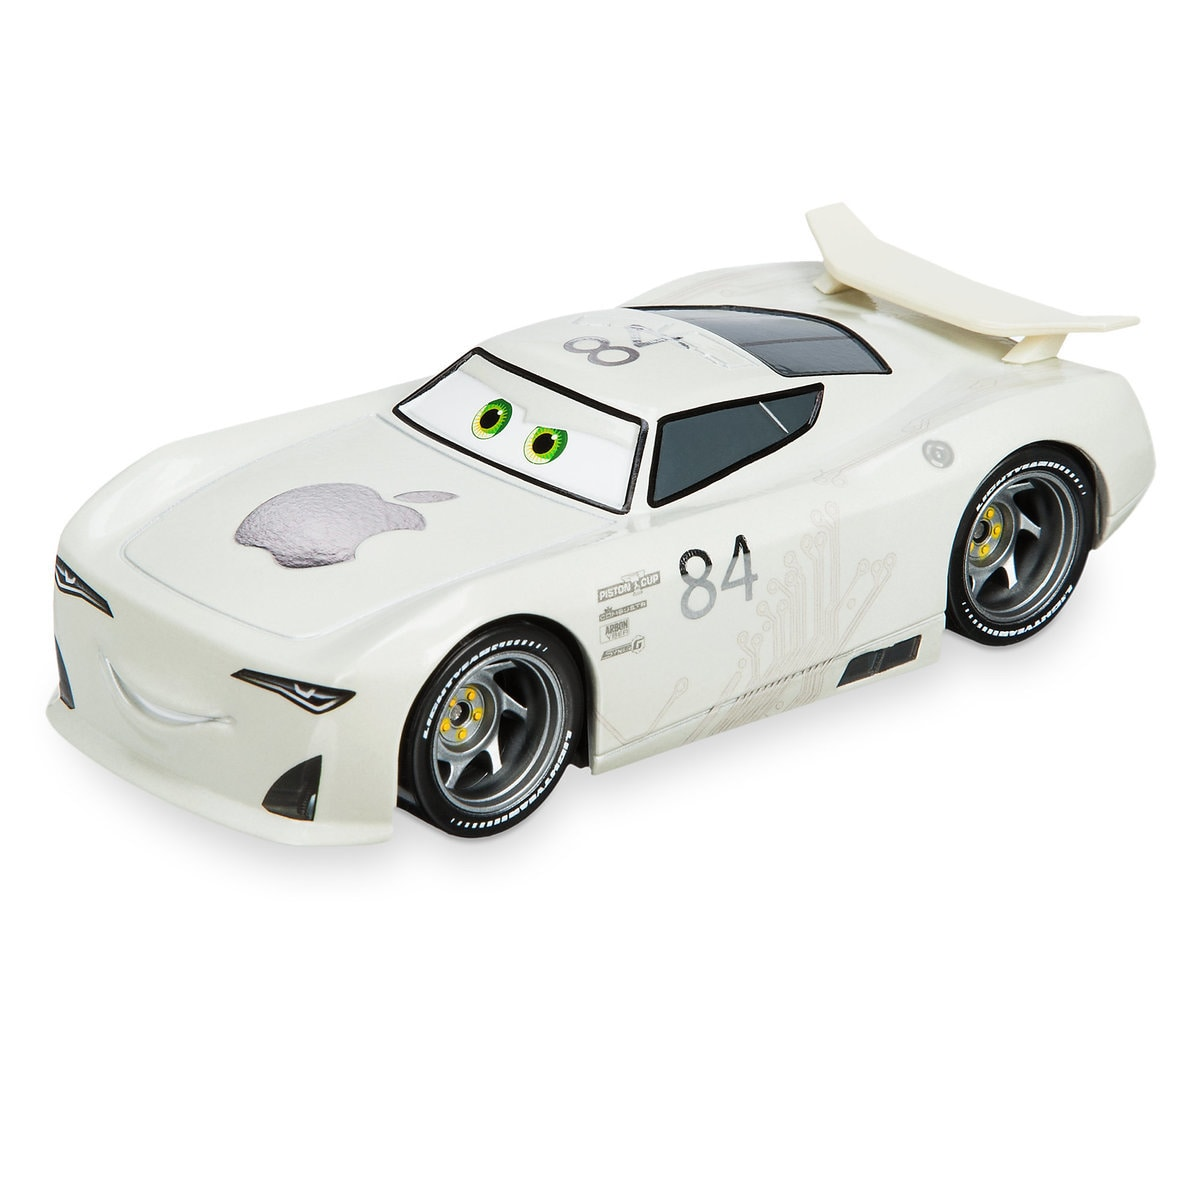 bde129437 Product Image of J.P. Drive Die Cast Car - Chaser Series - Cars 3 - Limited